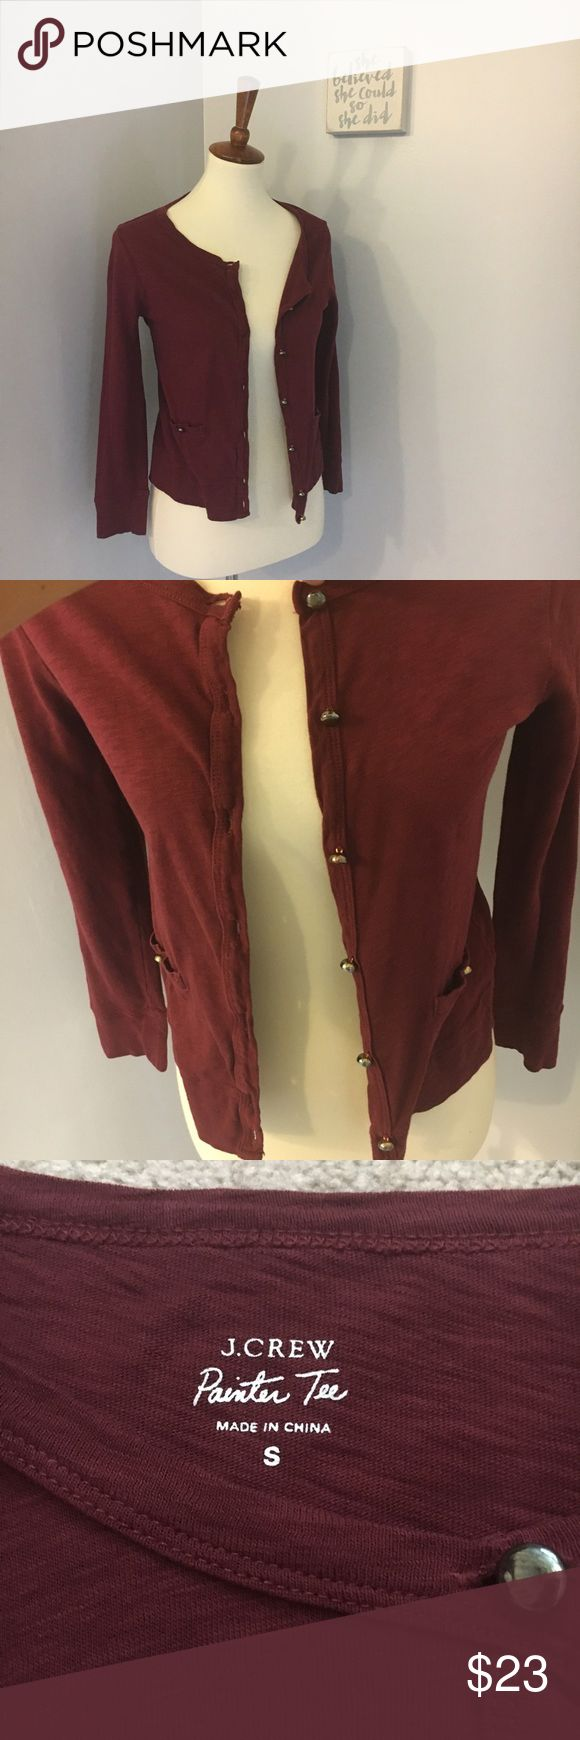 J. Crew painter tee maroon cardigan Size small. 15 inch bust (when buttoned) and 20 inch length. No trade J. Crew Sweaters Cardigans